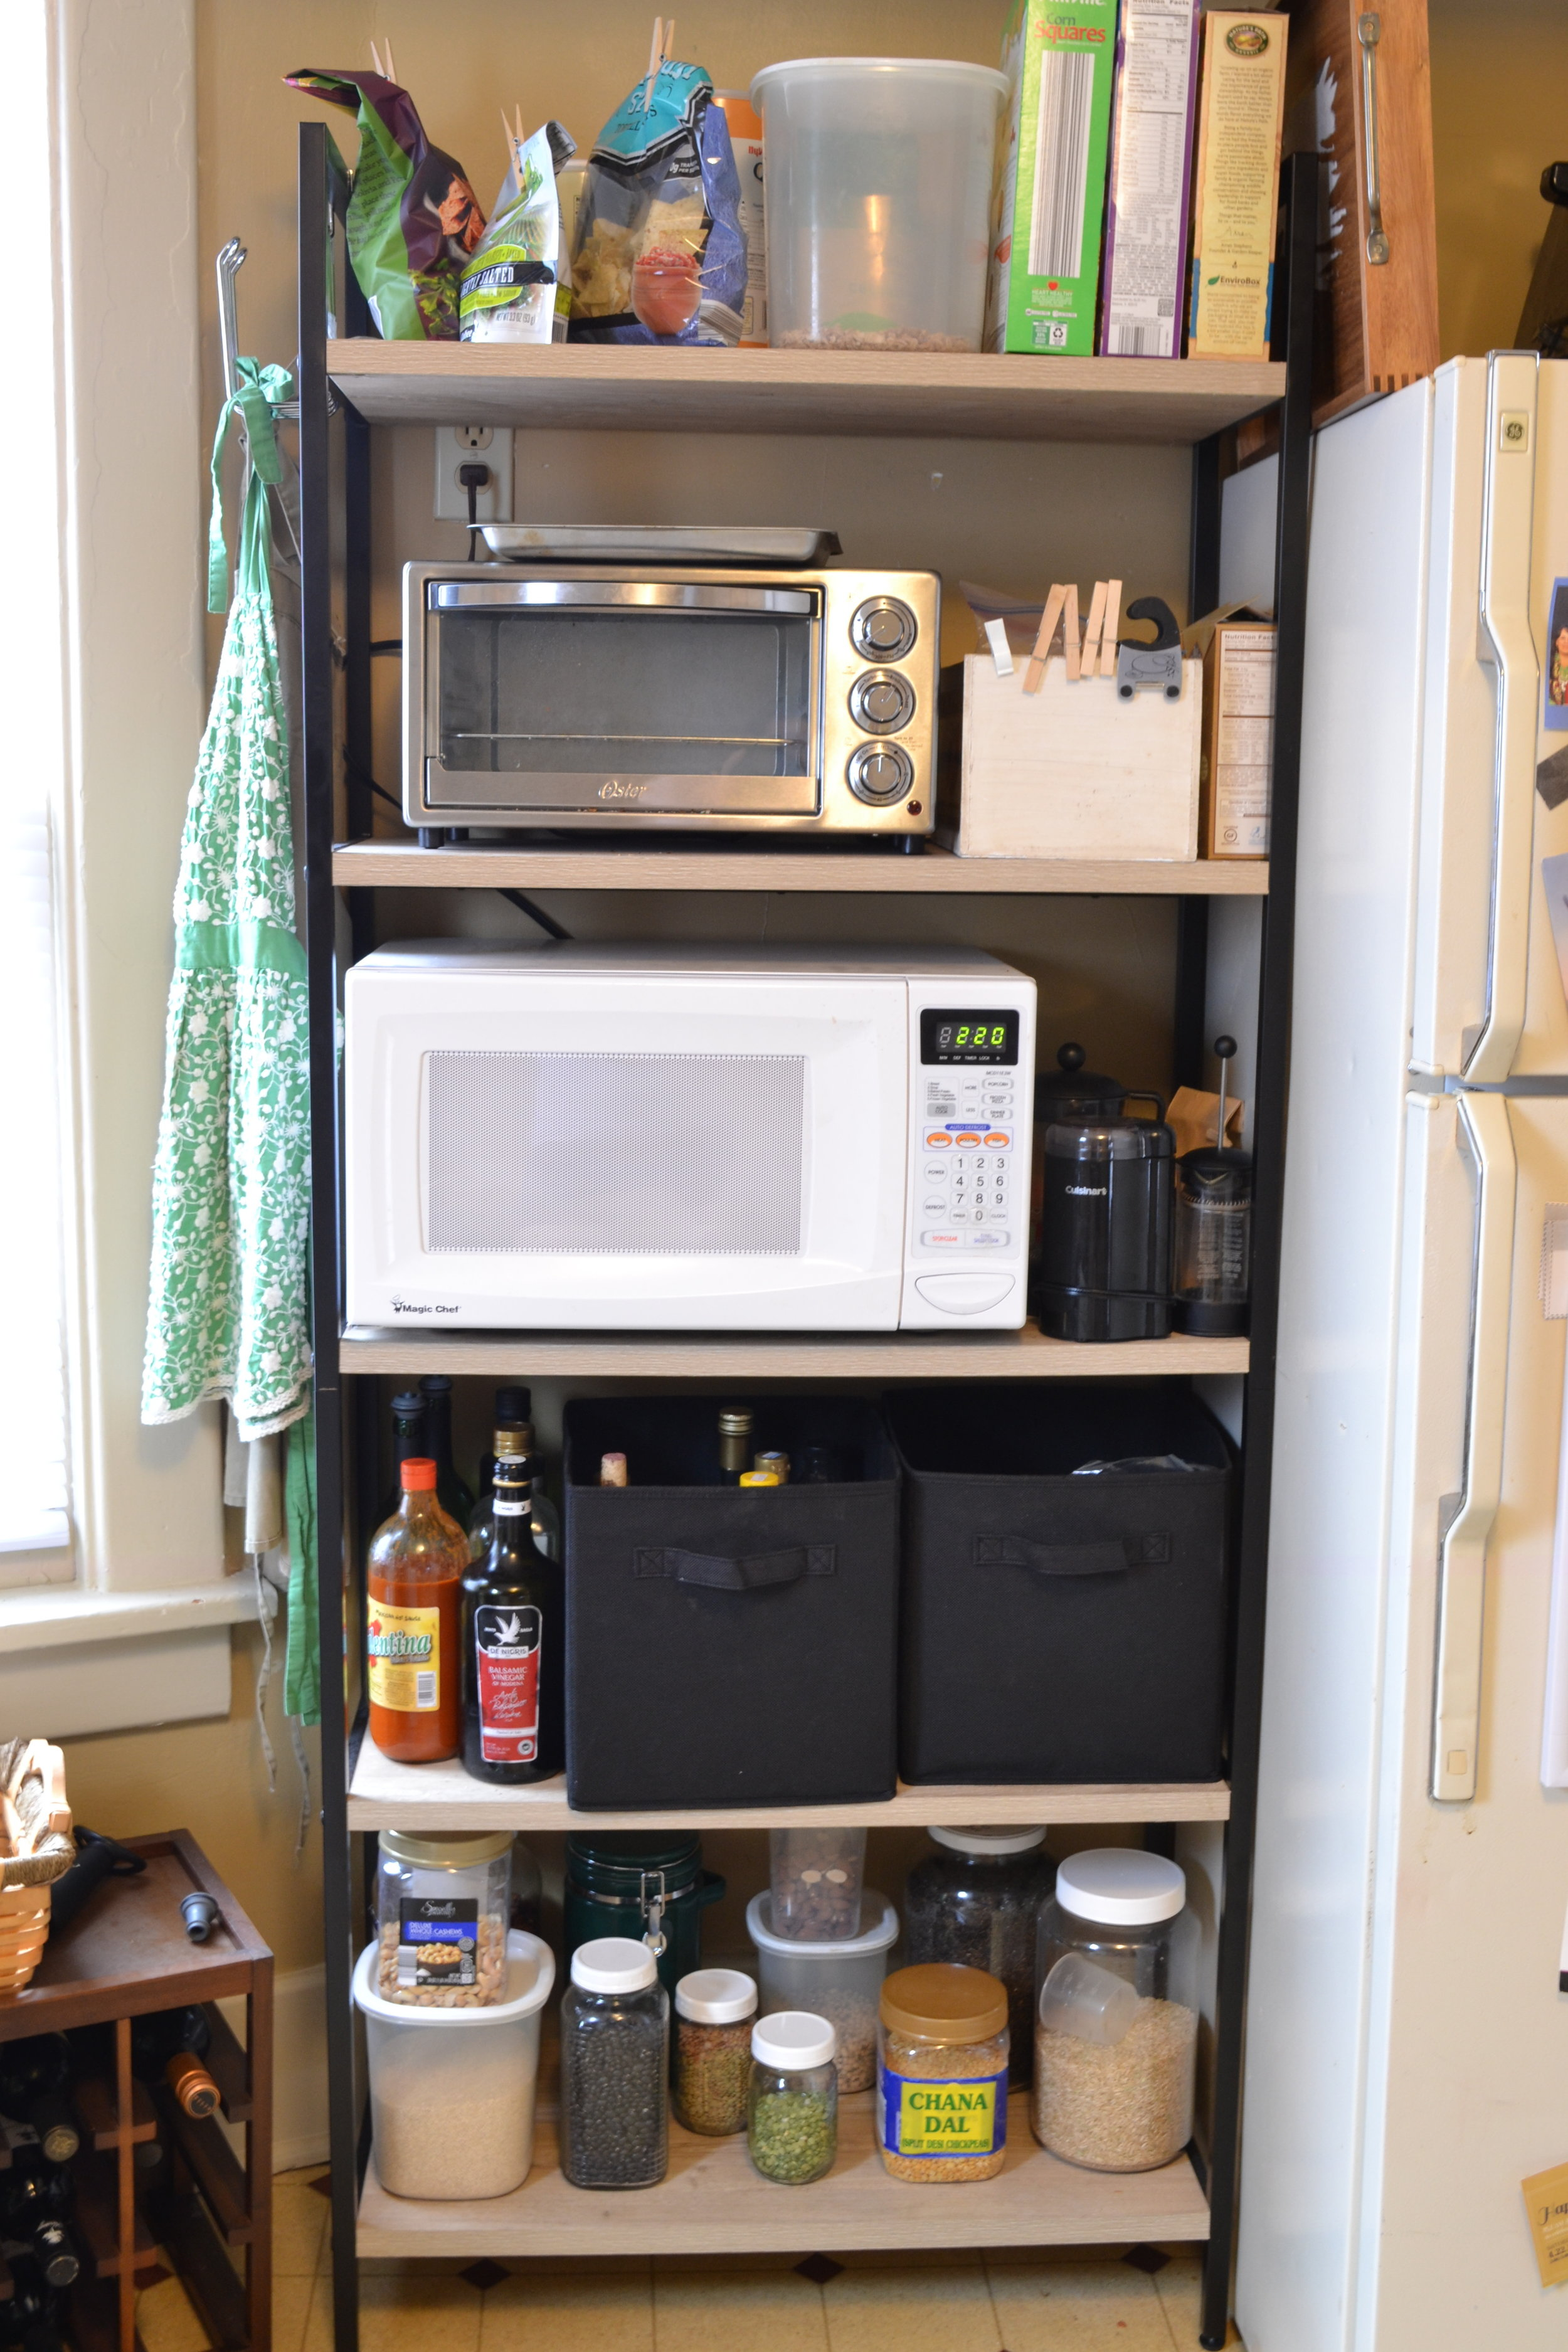 Creative ways to add more cabinet space in your kitchen.